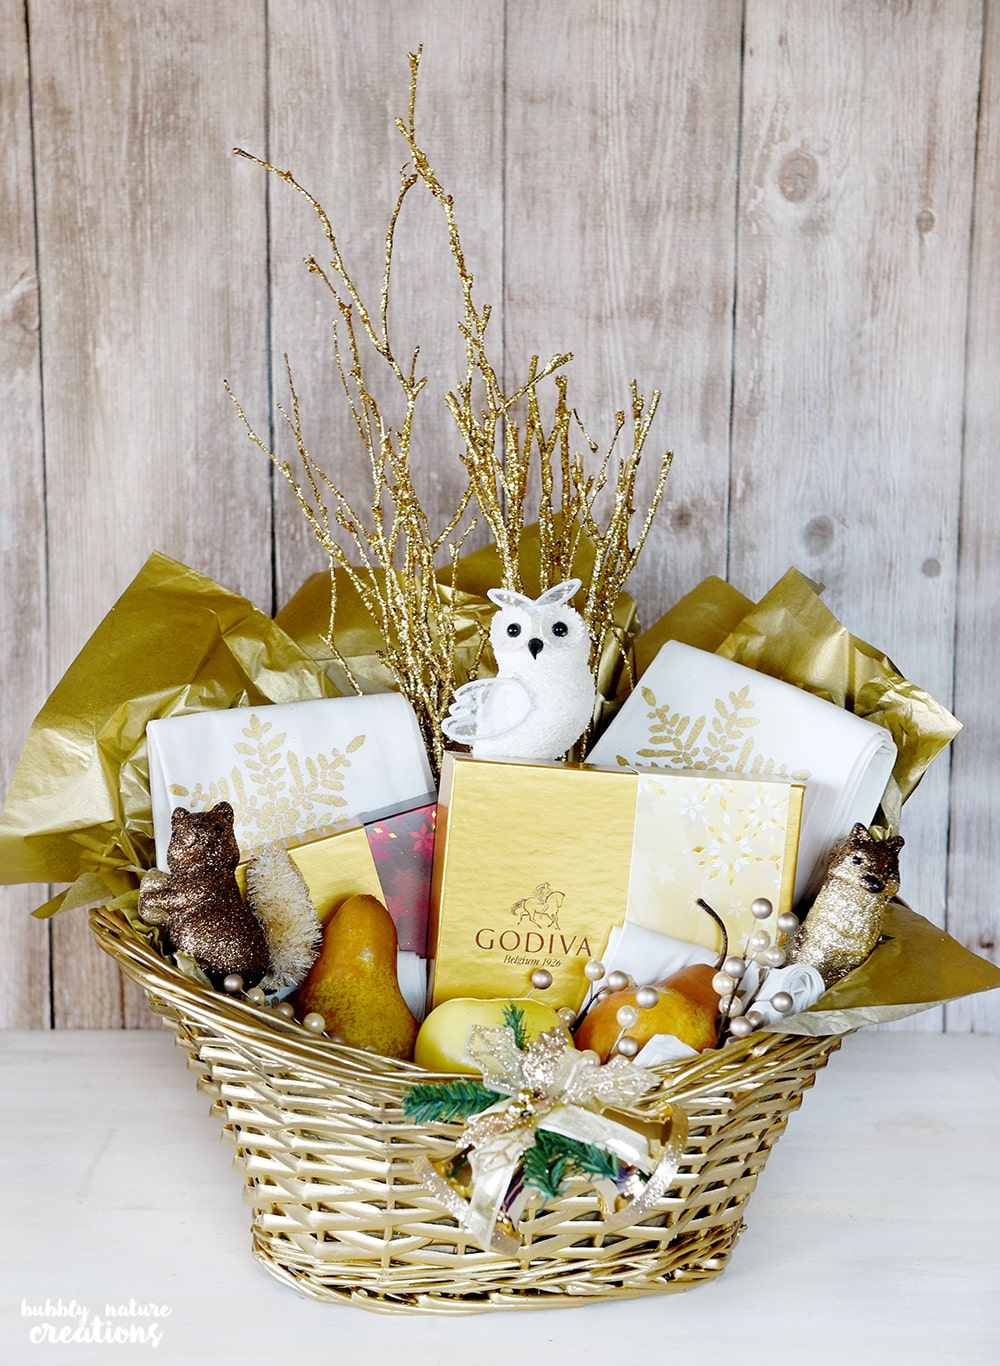 Gold gift basket gift giving ideas sprinkle some fun gold gift basket w godiva chocolates negle Image collections